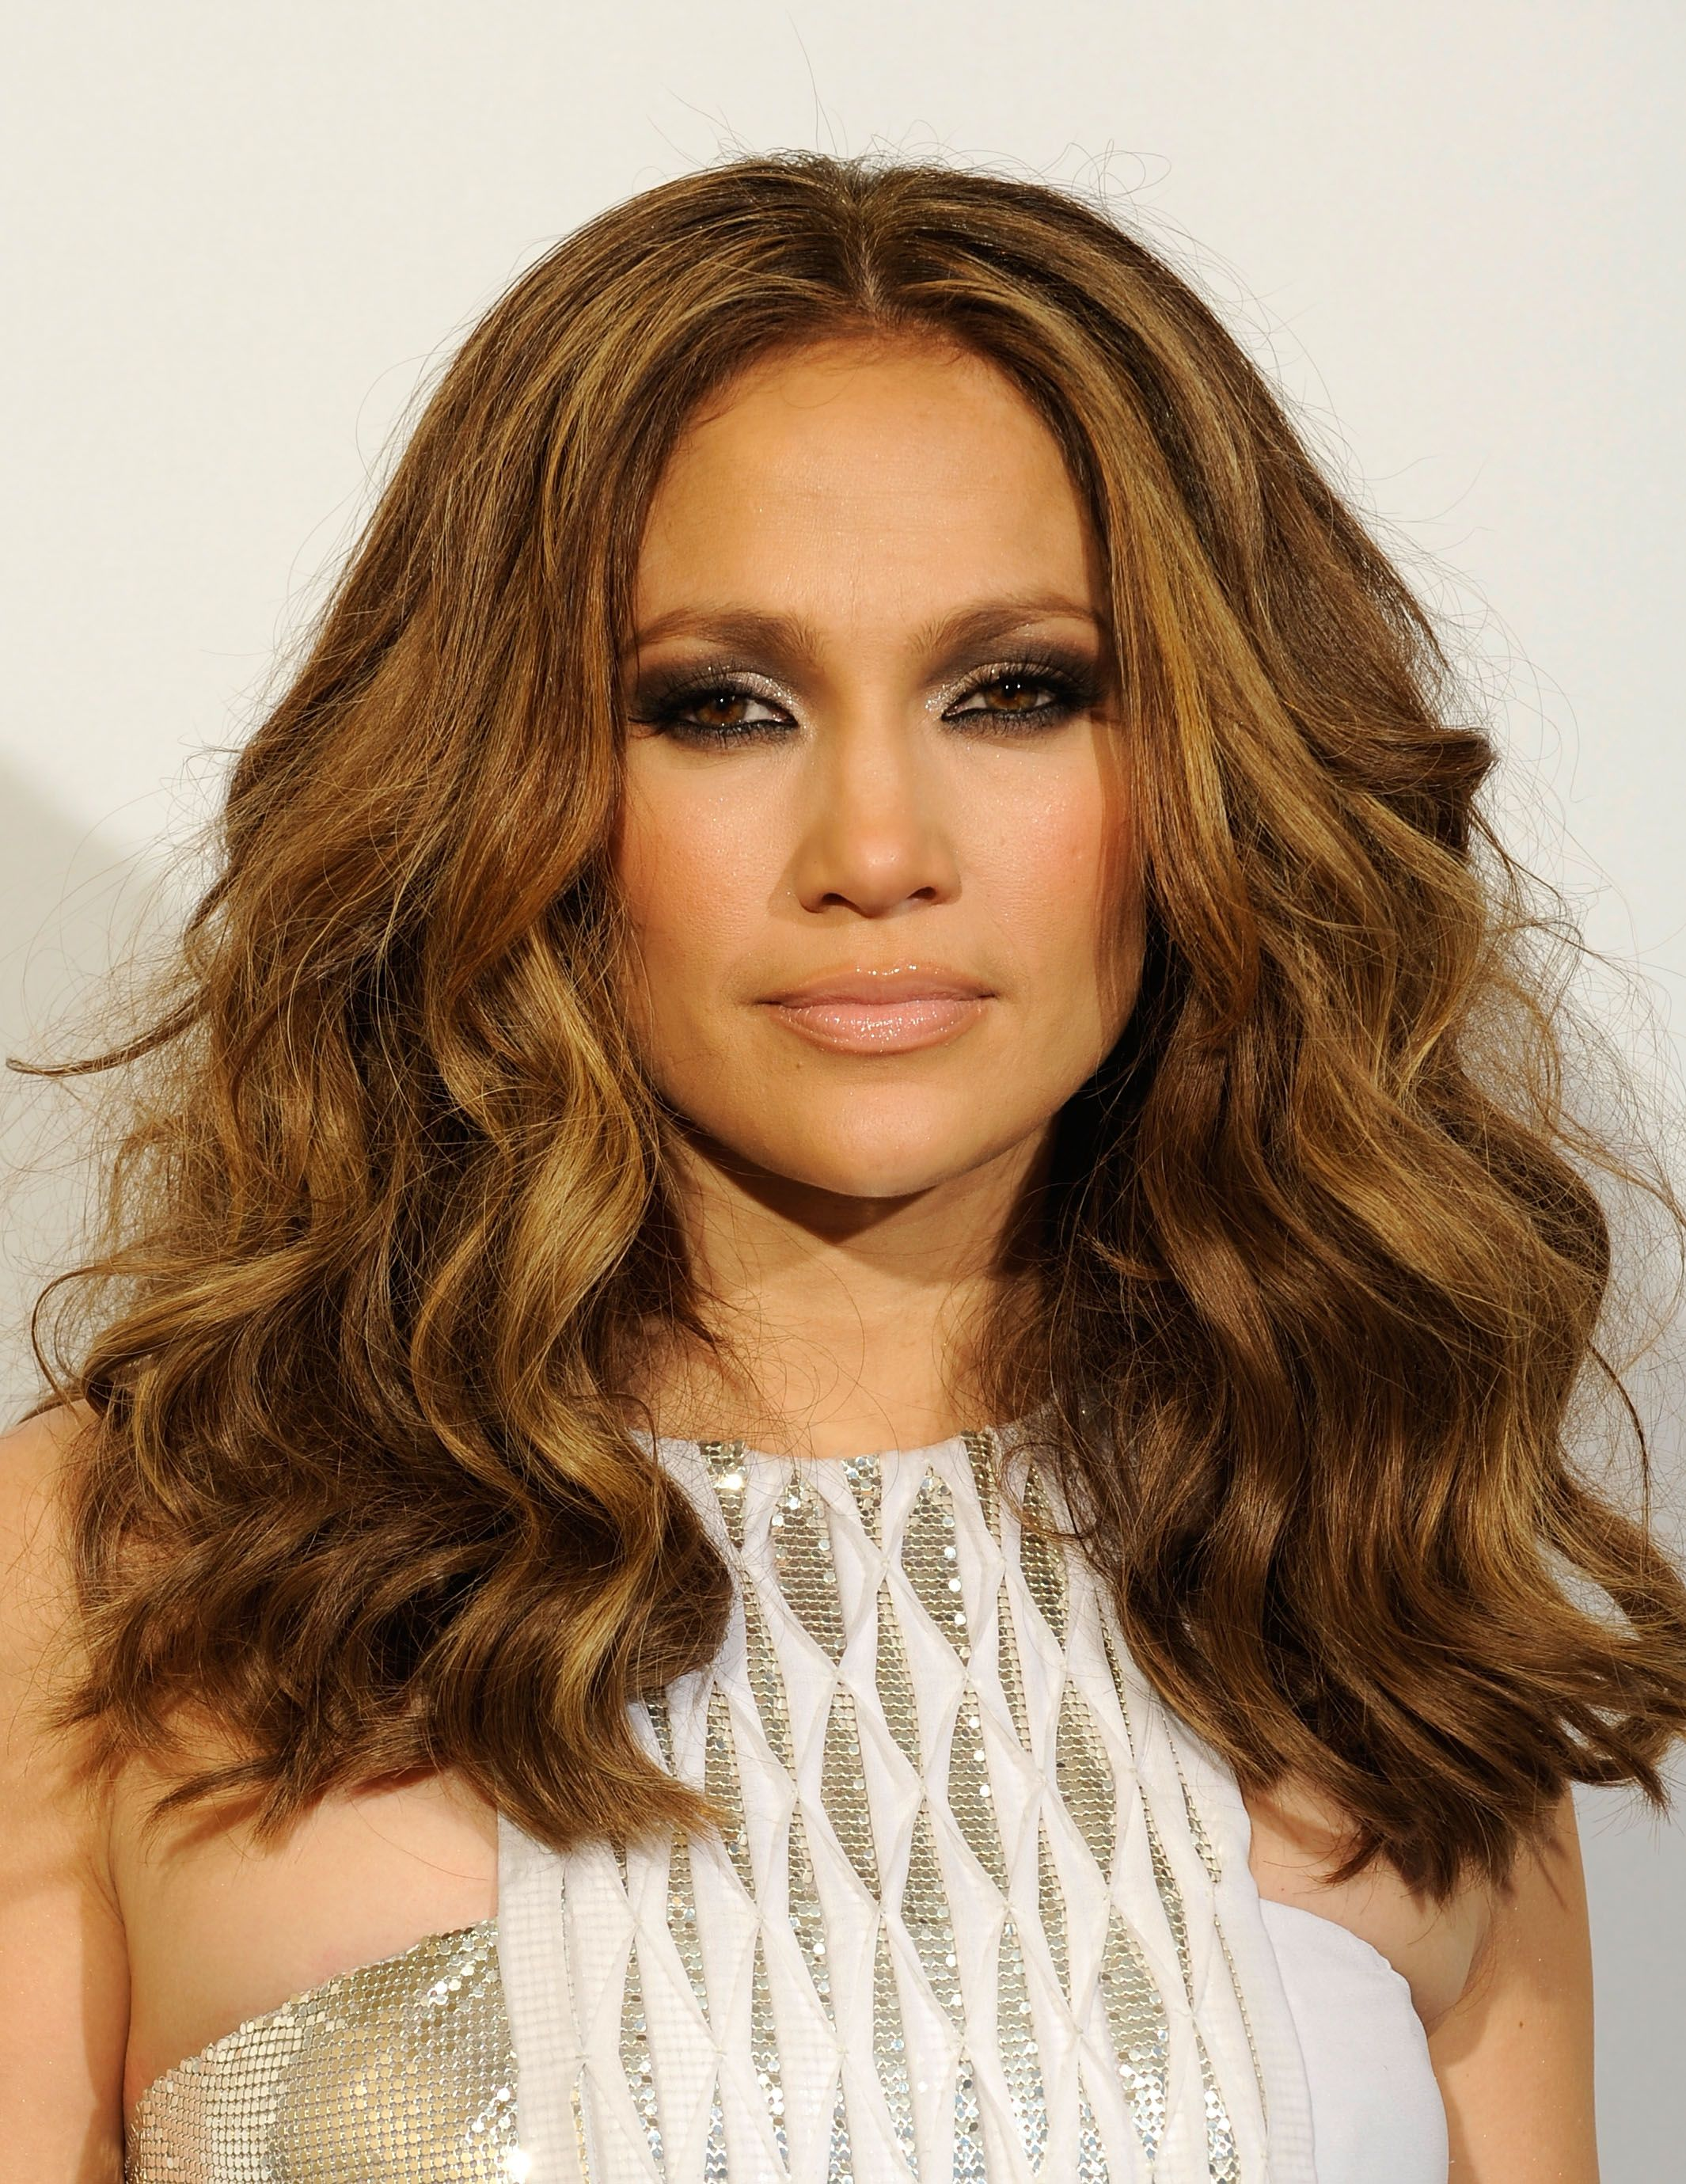 Angel Eyes Nude Pics 24 years of jennifer lopez's makeup looks